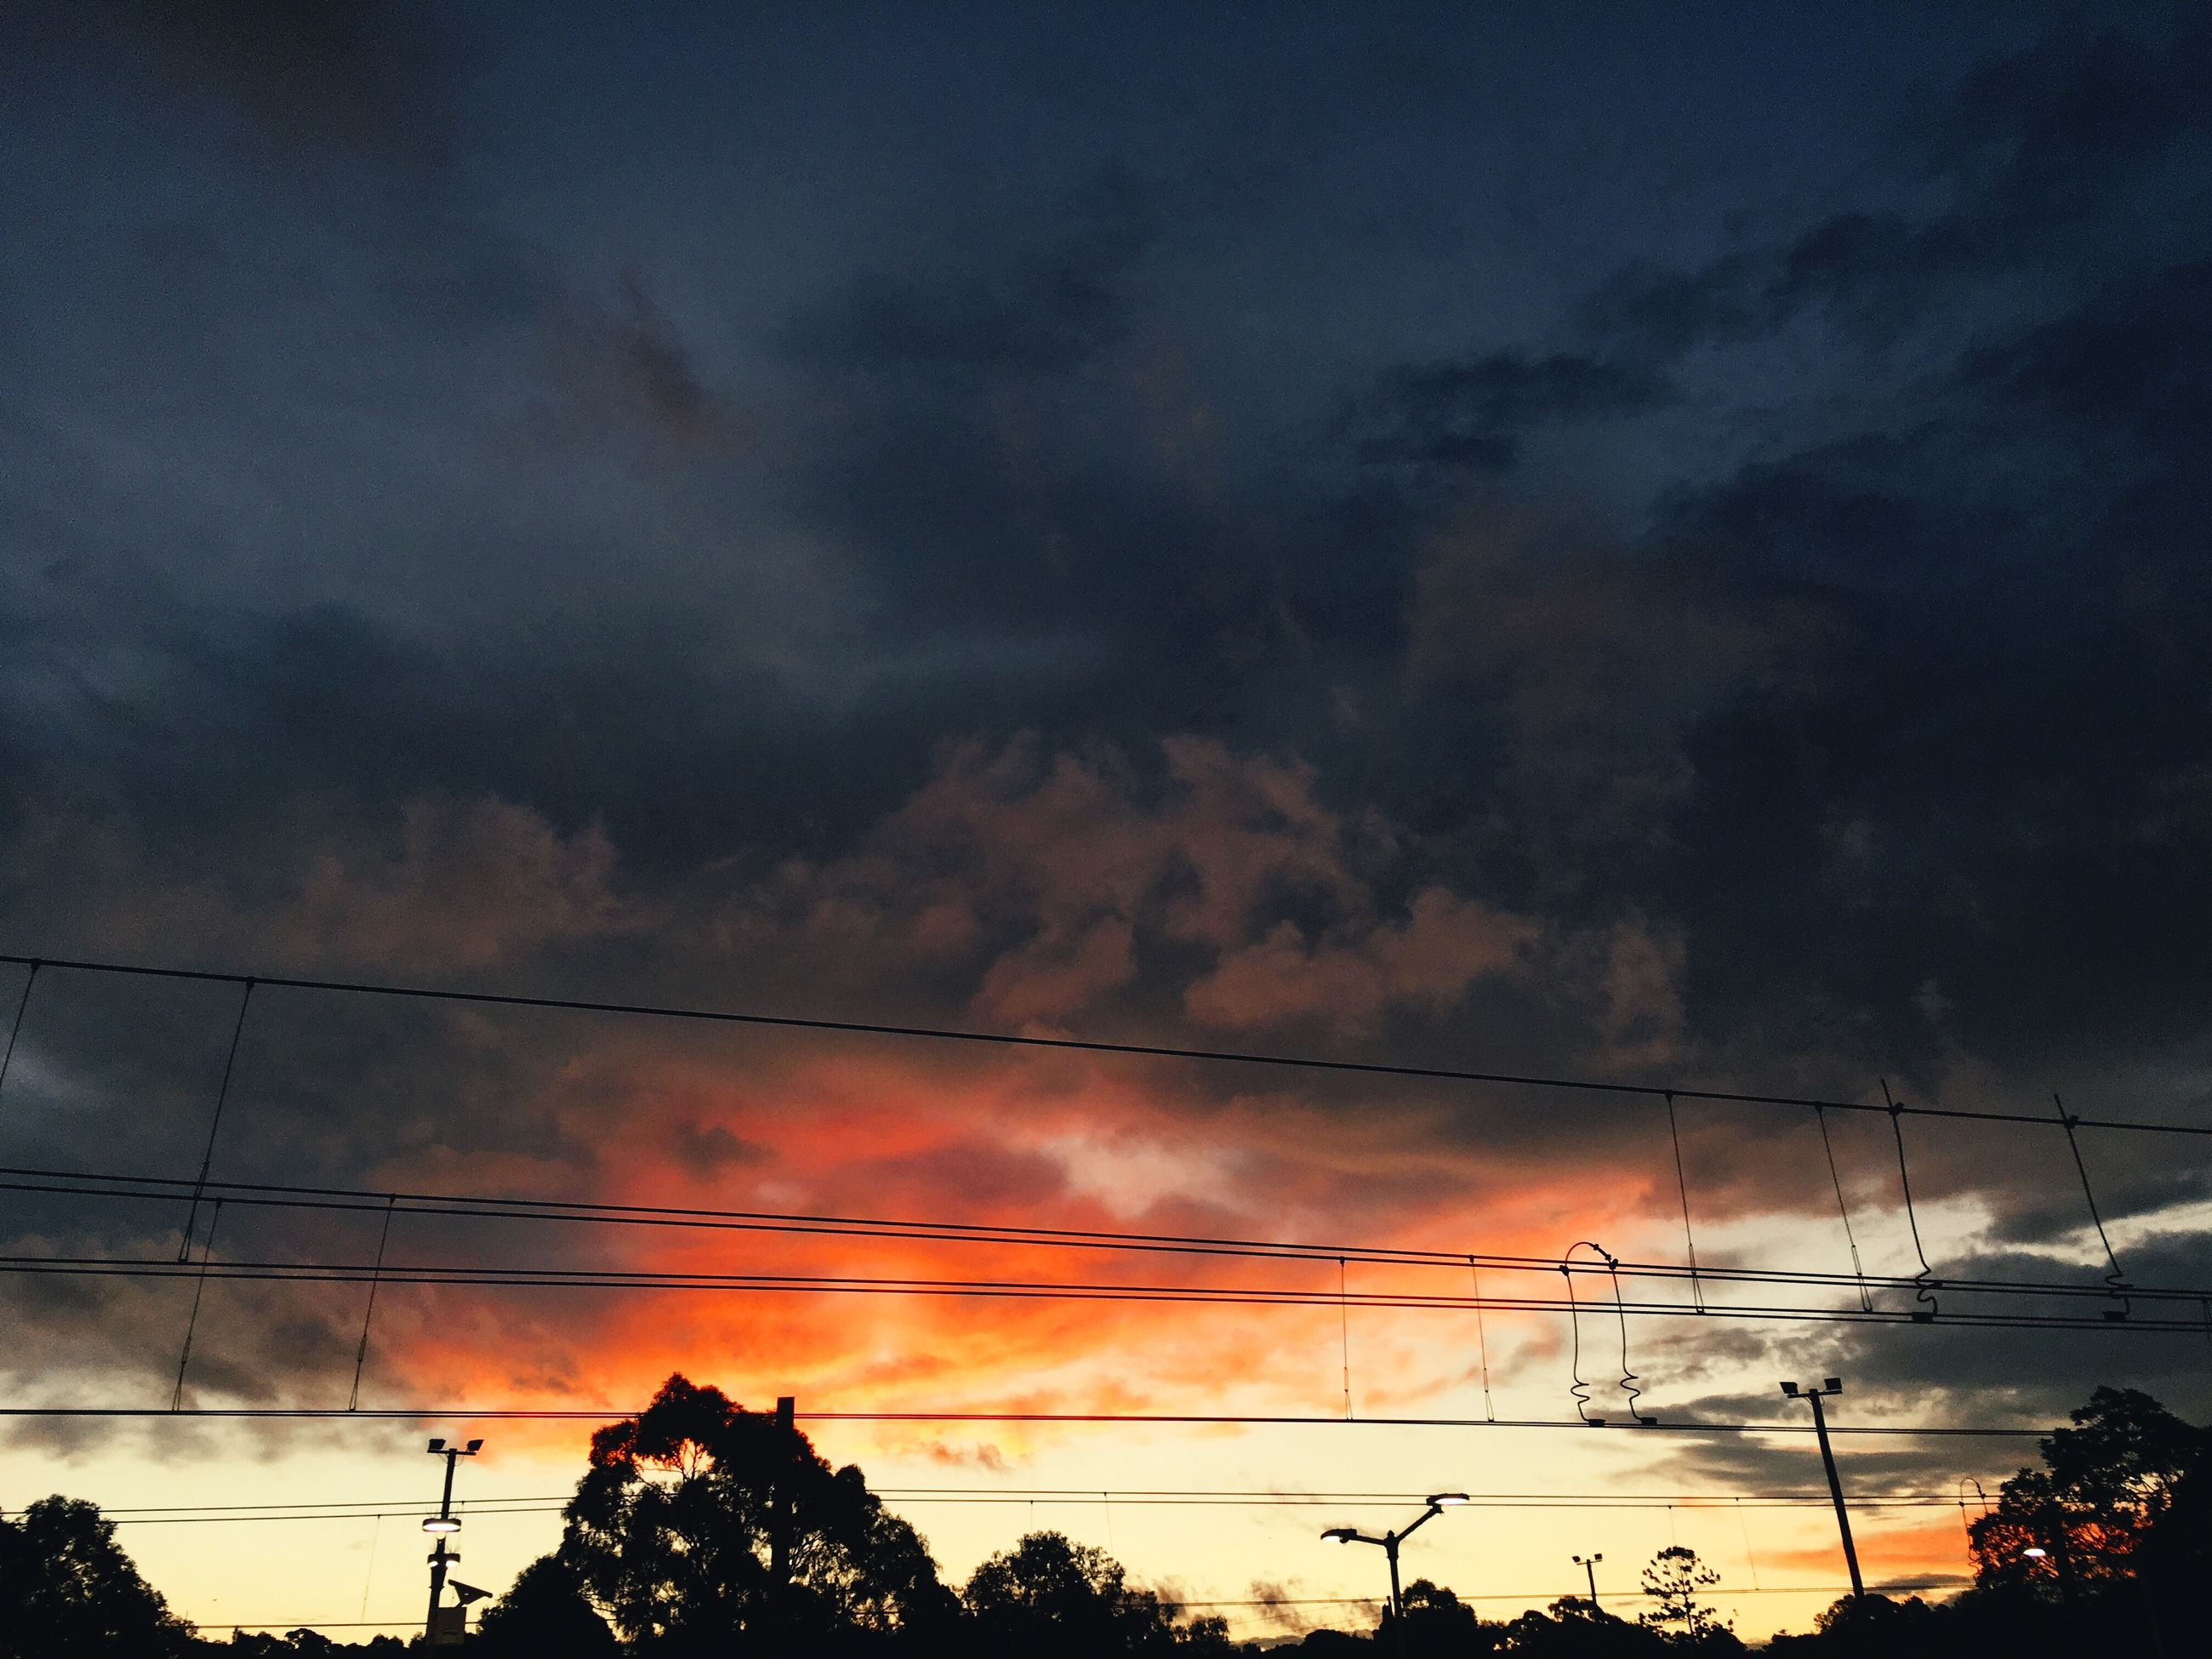 low angle view, sky, cloud - sky, power line, silhouette, cloudy, sunset, electricity pylon, tree, electricity, power supply, beauty in nature, scenics, weather, tranquility, cable, nature, cloud, dramatic sky, connection